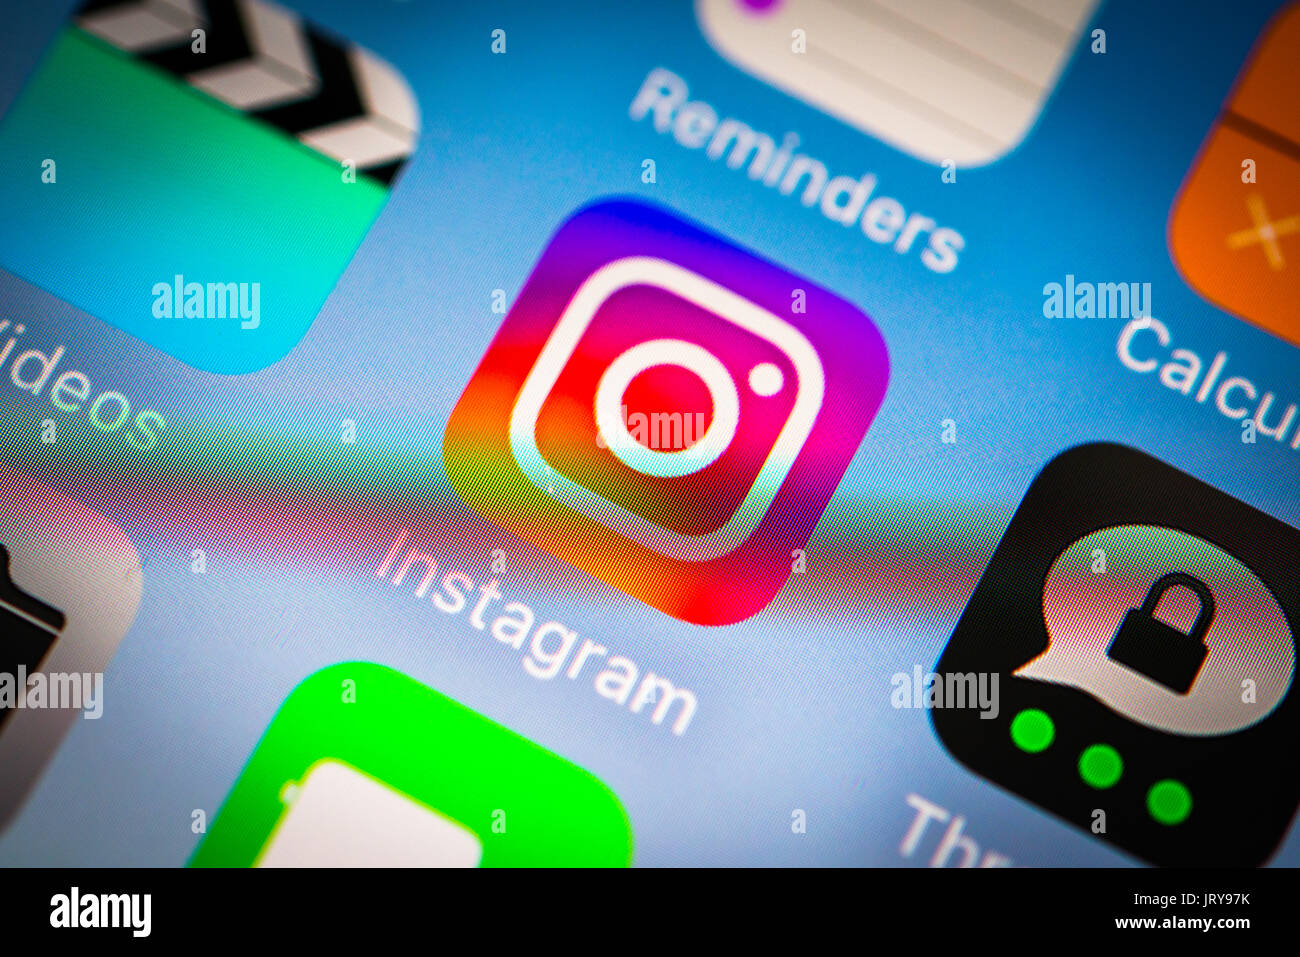 Icon, Logo, Instagram, Social Network, Display, Screen, iPhone, many different app icons, app, cell phone, smartphone, - Stock Image